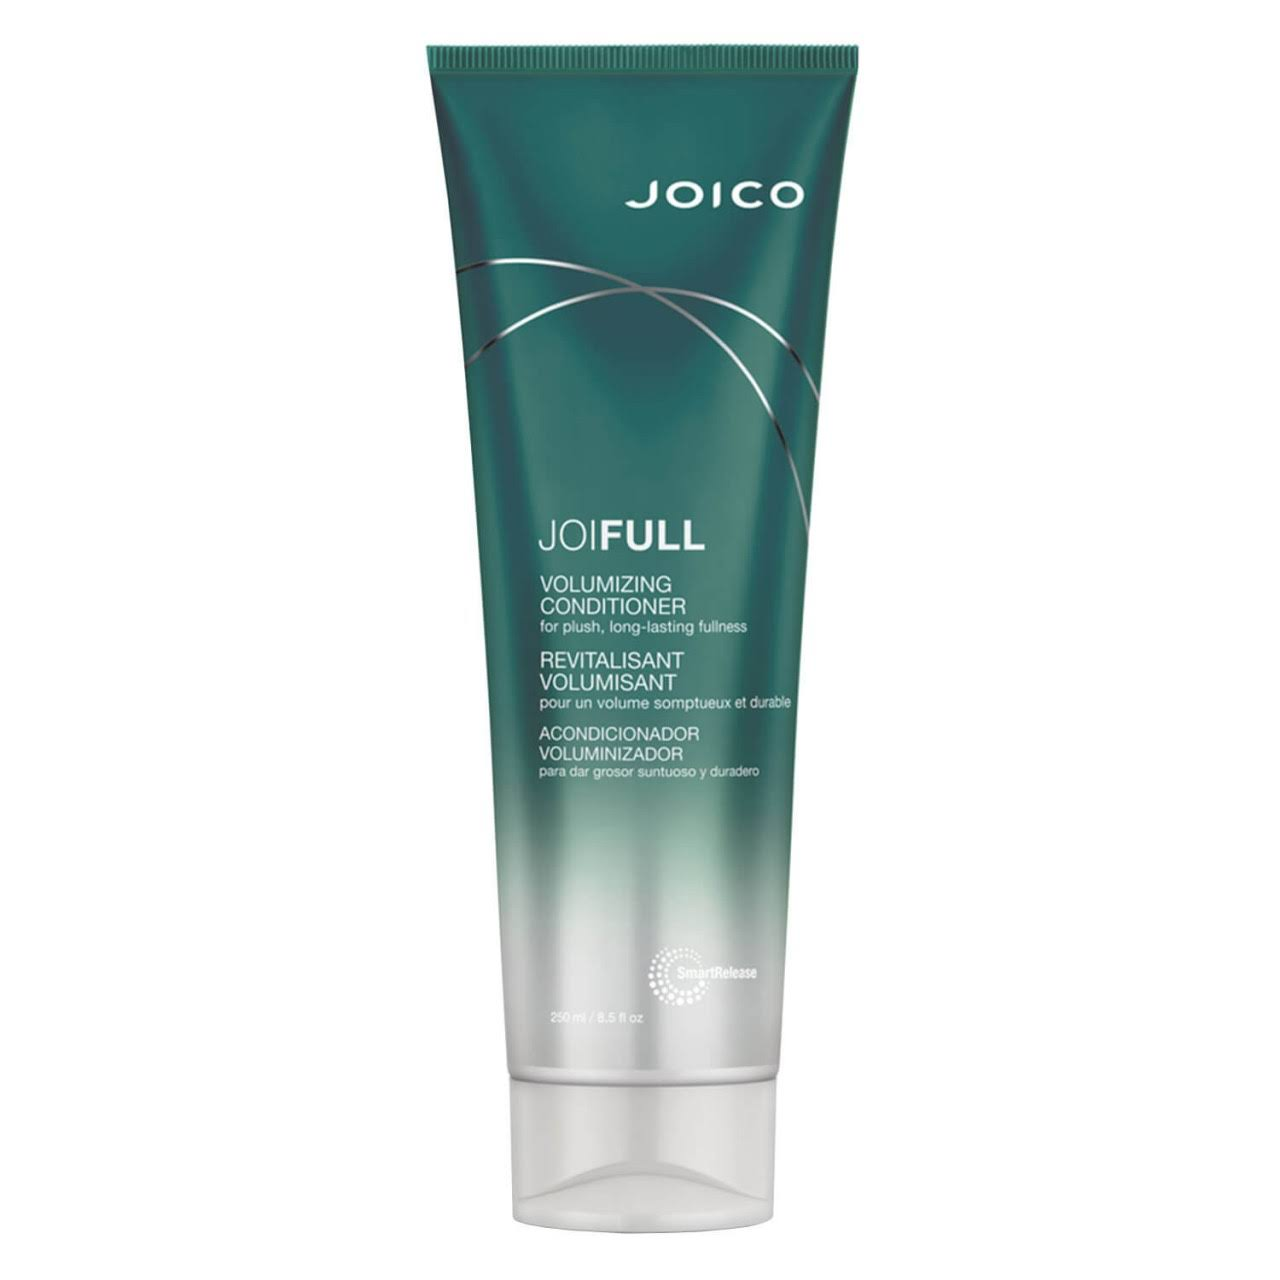 Joico Joifull Volumizing Conditioner - 8.5oz